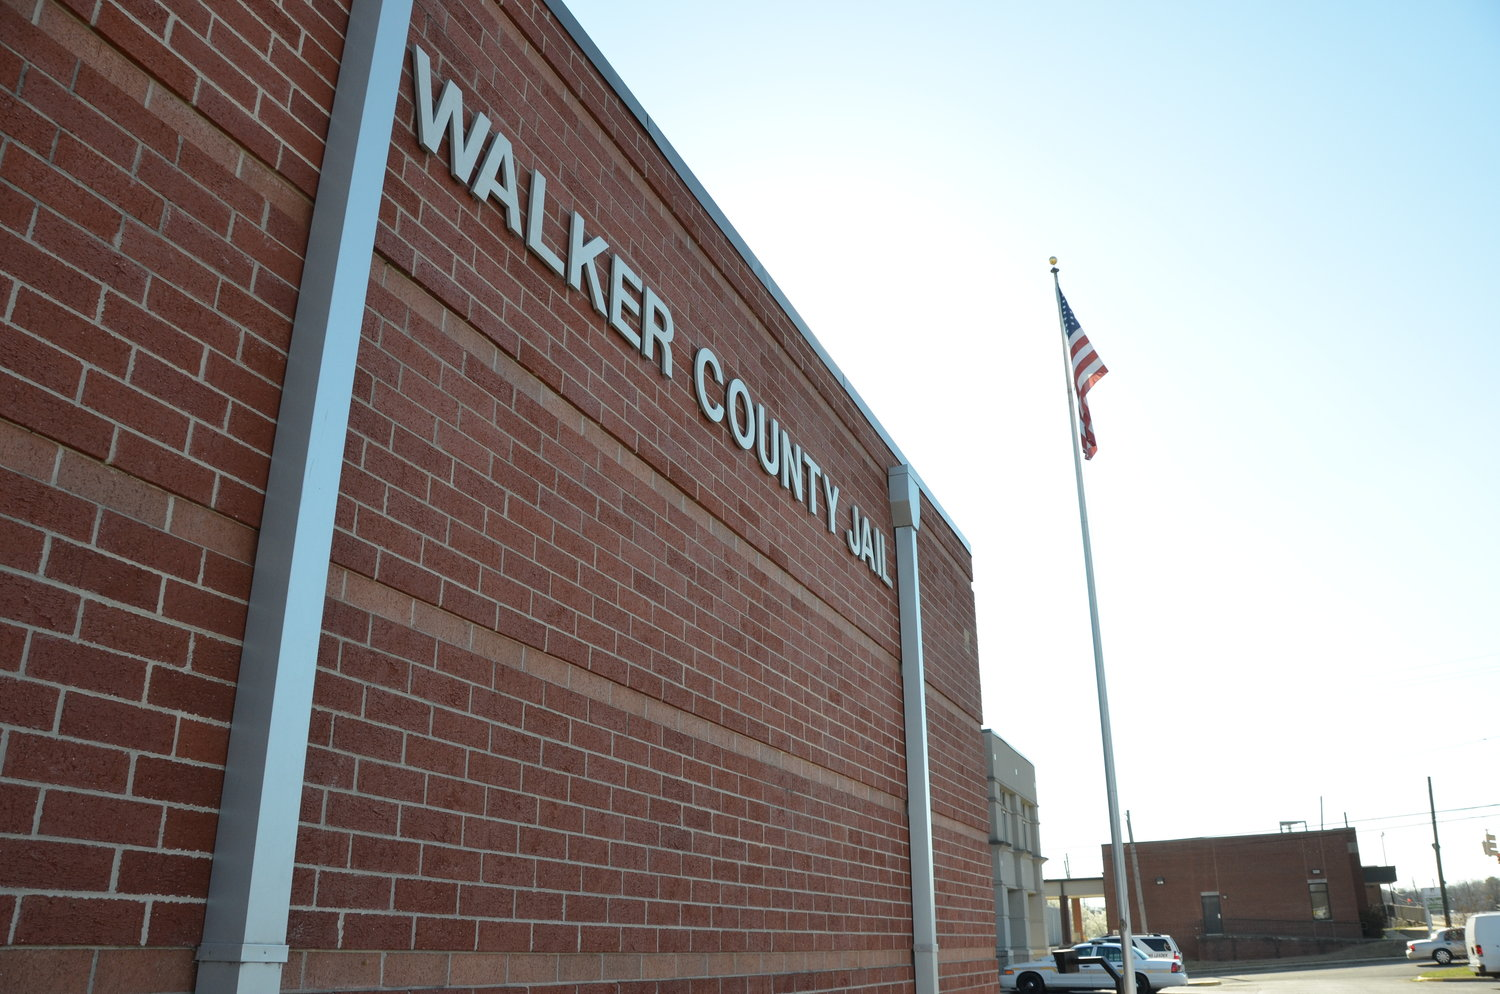 Officials with the Walker County Jail are starting to make long-term plans to add 40 beds with an additional dorm building as arrests continue to increase.